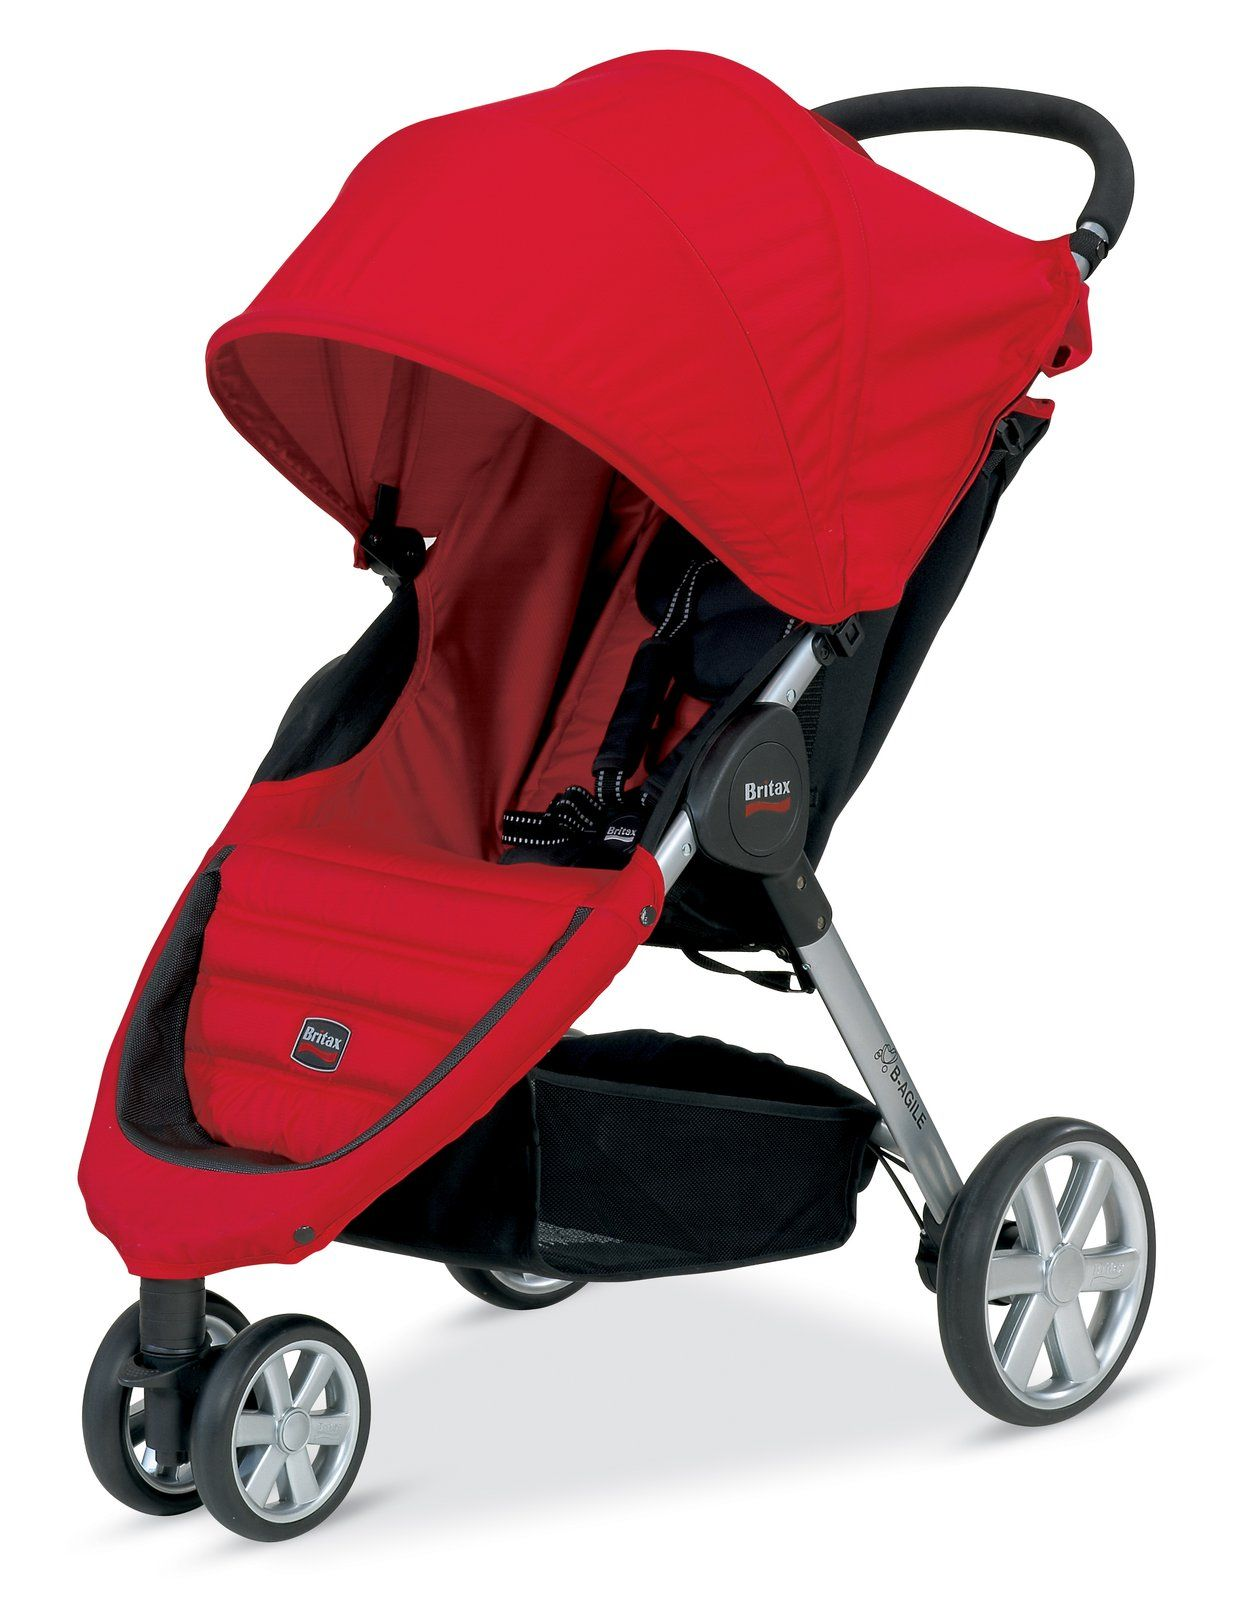 Britax BAgile Stroller Red Best Price Travel system